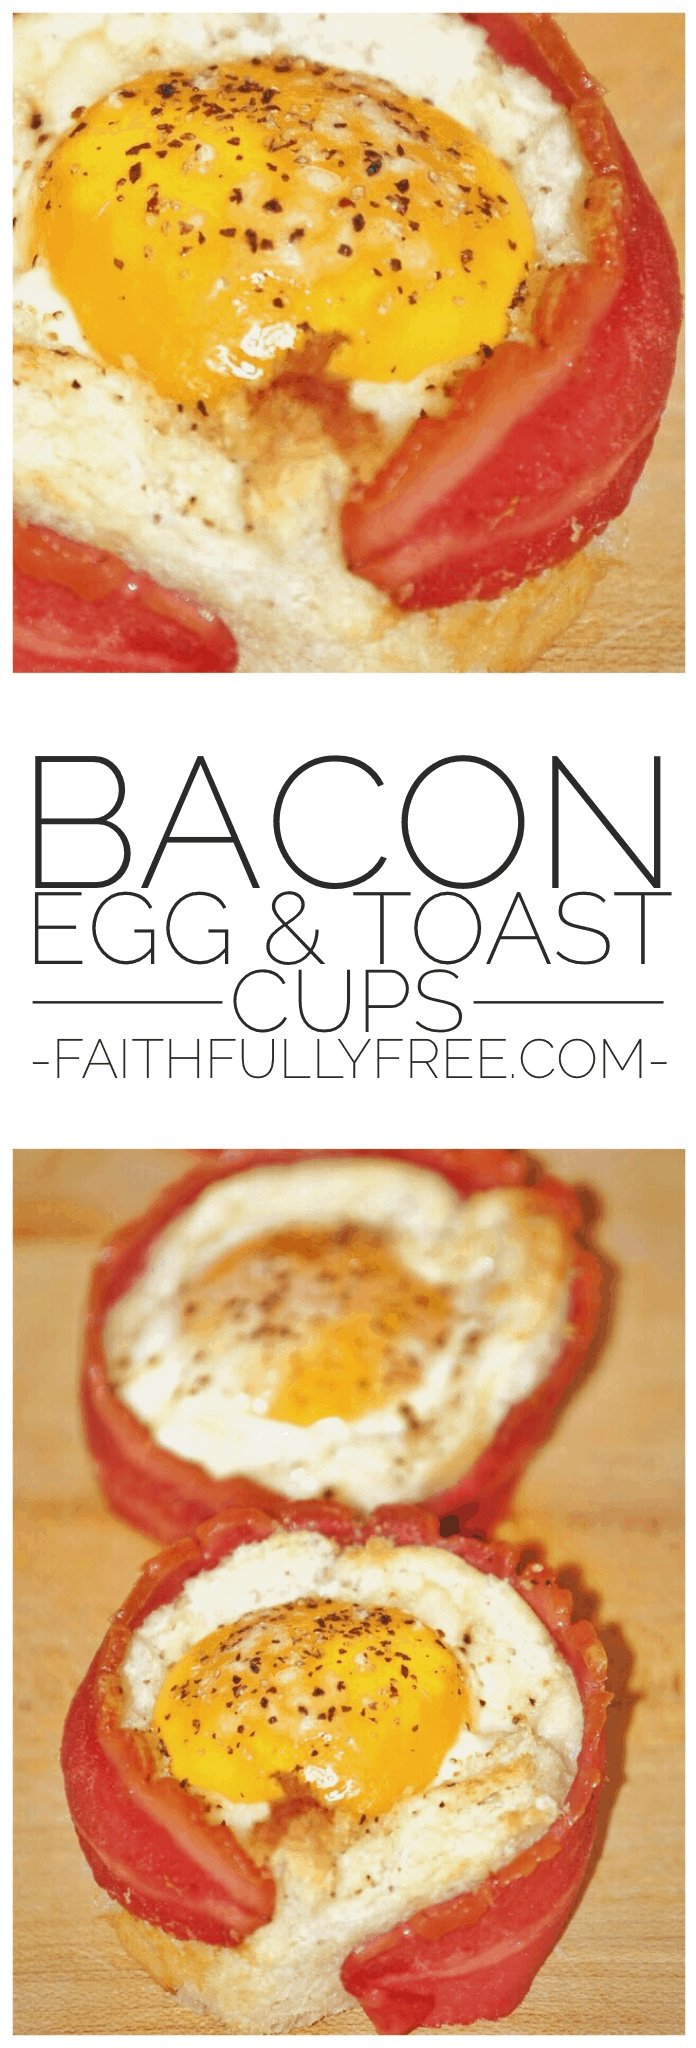 Bacon, Egg and Toast Cups Recipe